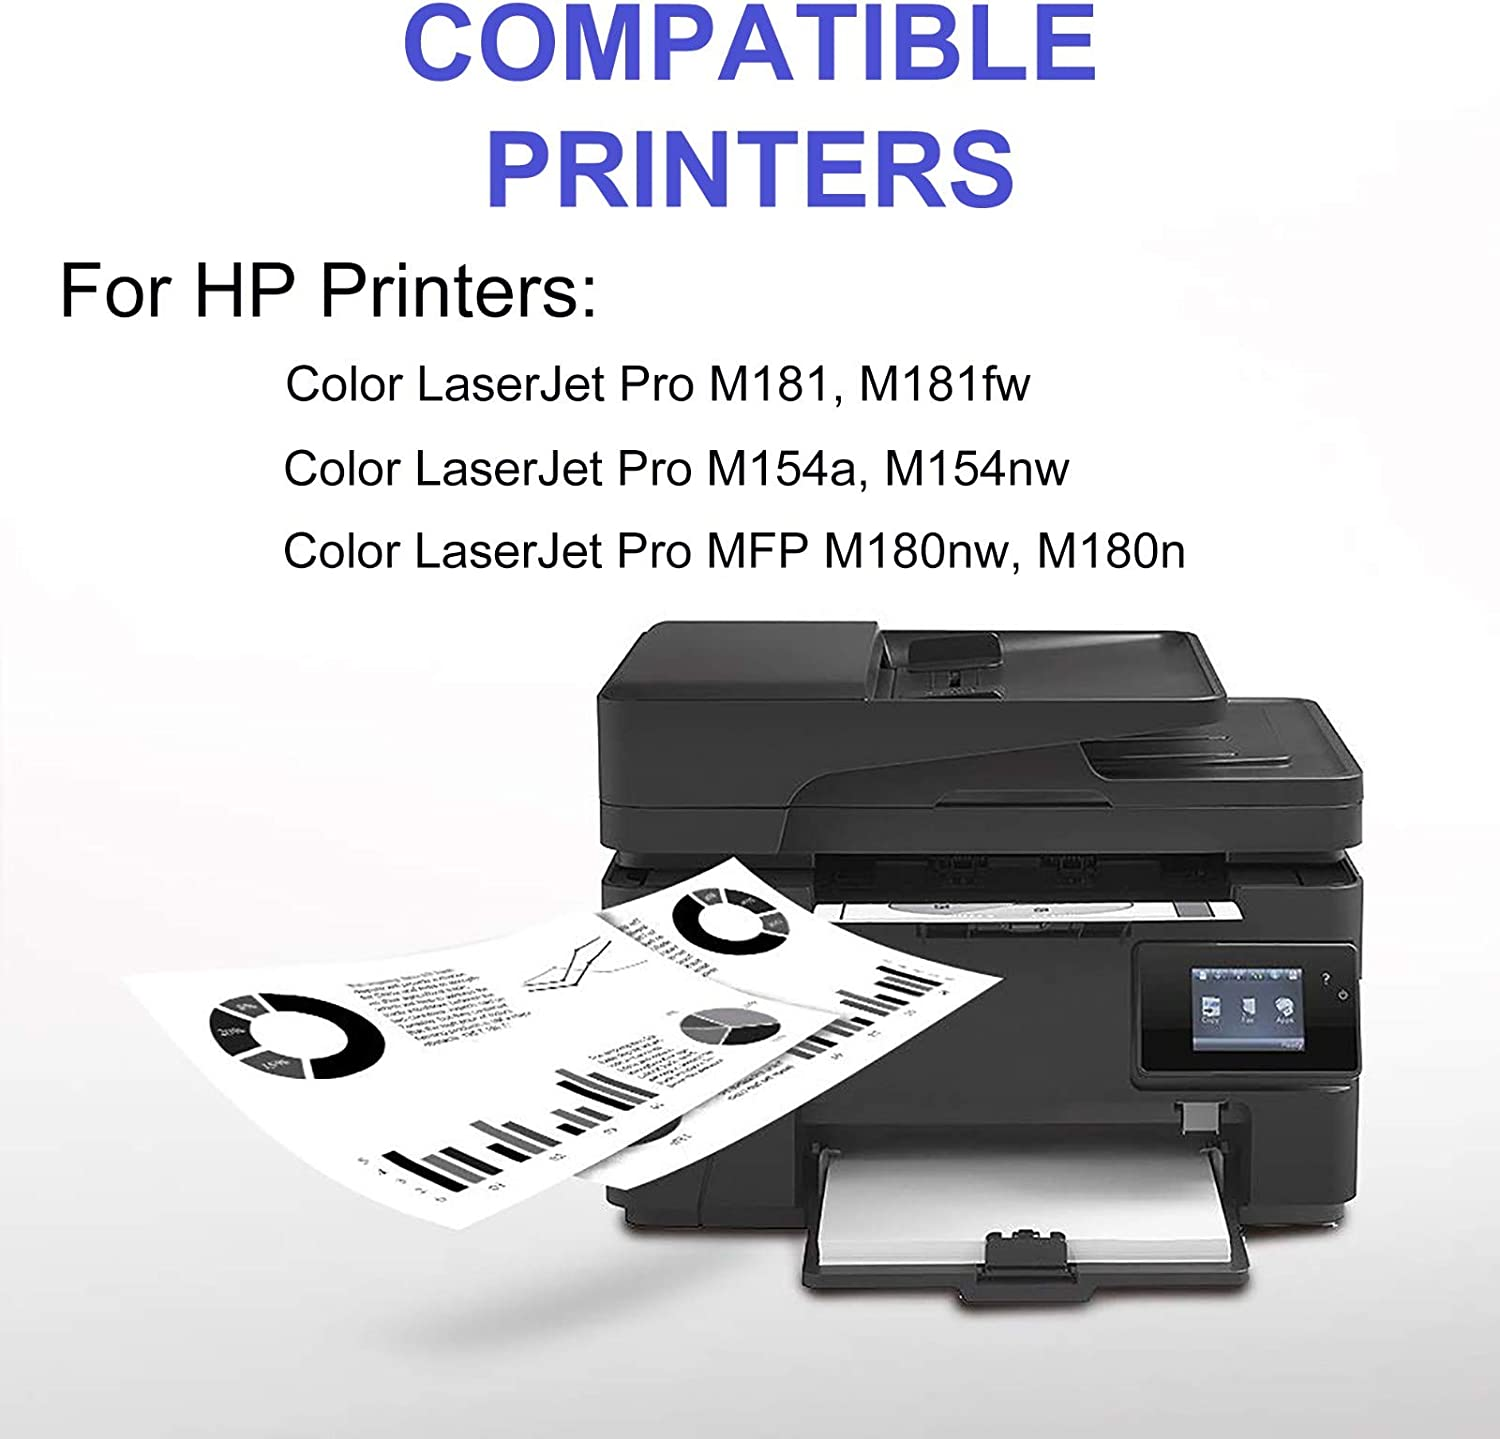 CF510A CF511A CF512A CF513A 2BK+C+Y+M Replacement for 5-Pack 204A Toner Cartridge Compatible Color Laserjet Pro M154nw M154a Printer Cartridge High Capacity Print True-to-Life Photos